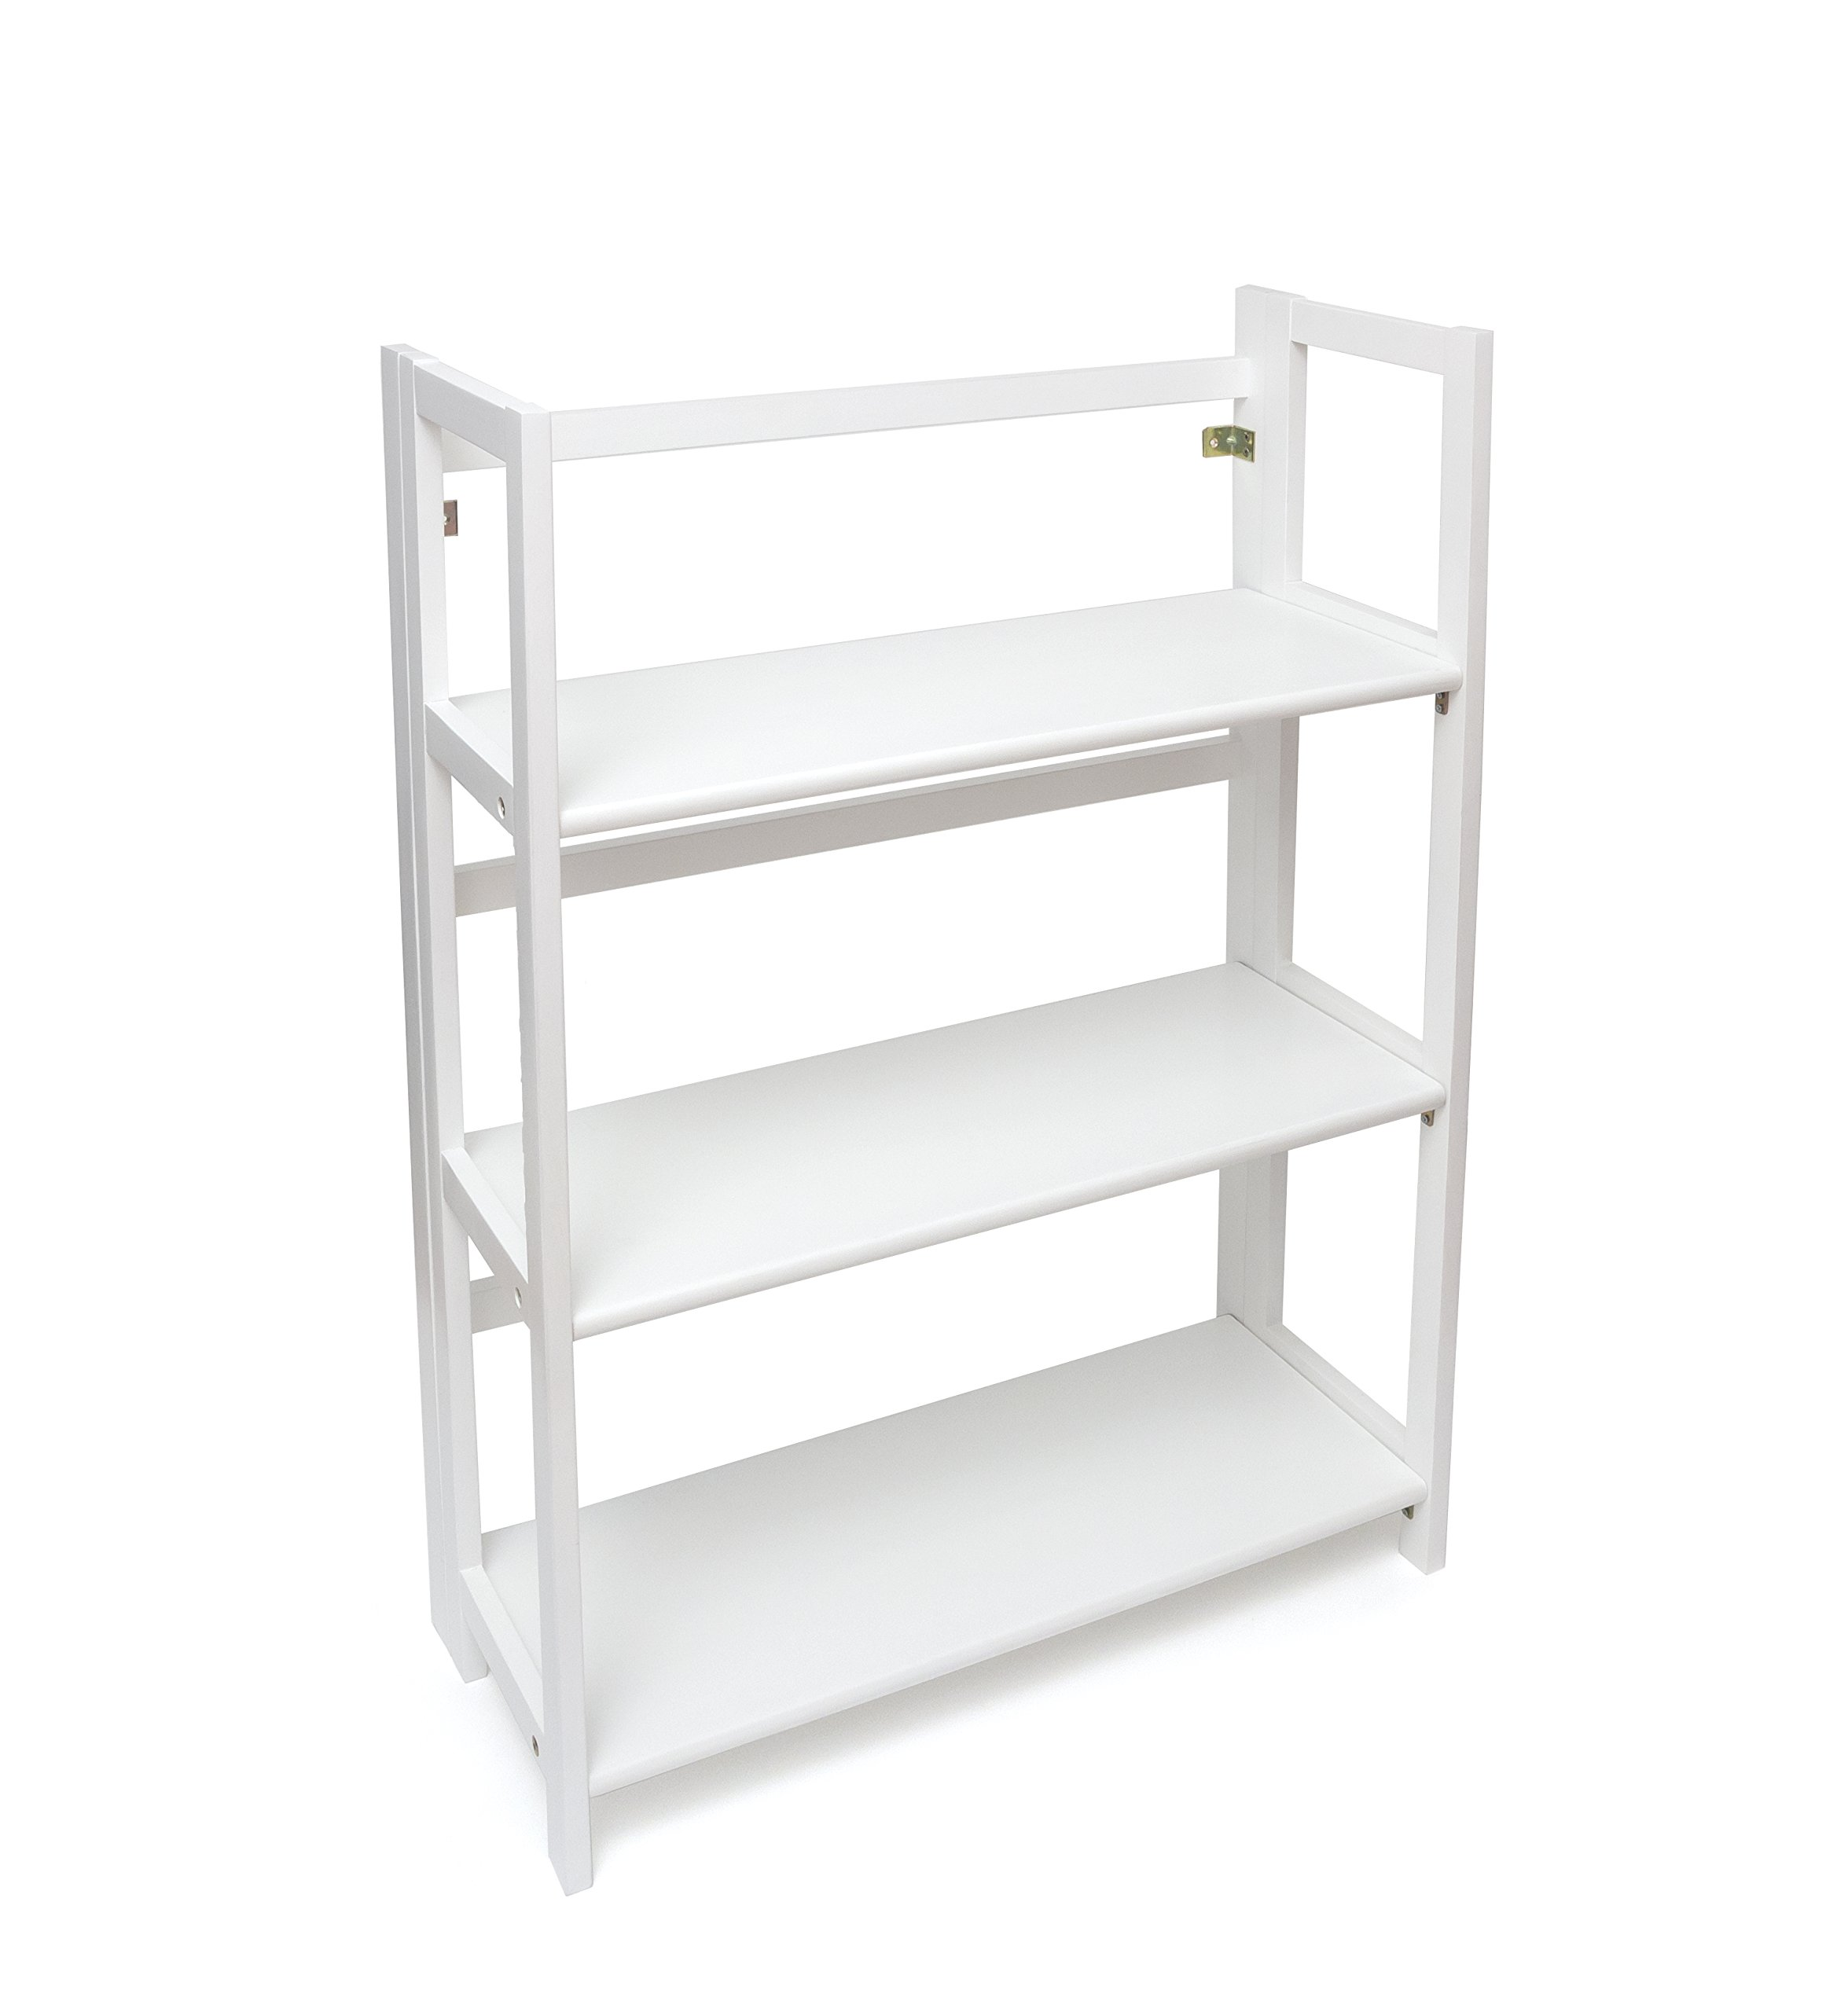 Lipper International 517W 3-Shelf Folding Bookcase, 27.25'' W x 11.5'' D x 38'' H, White Finish